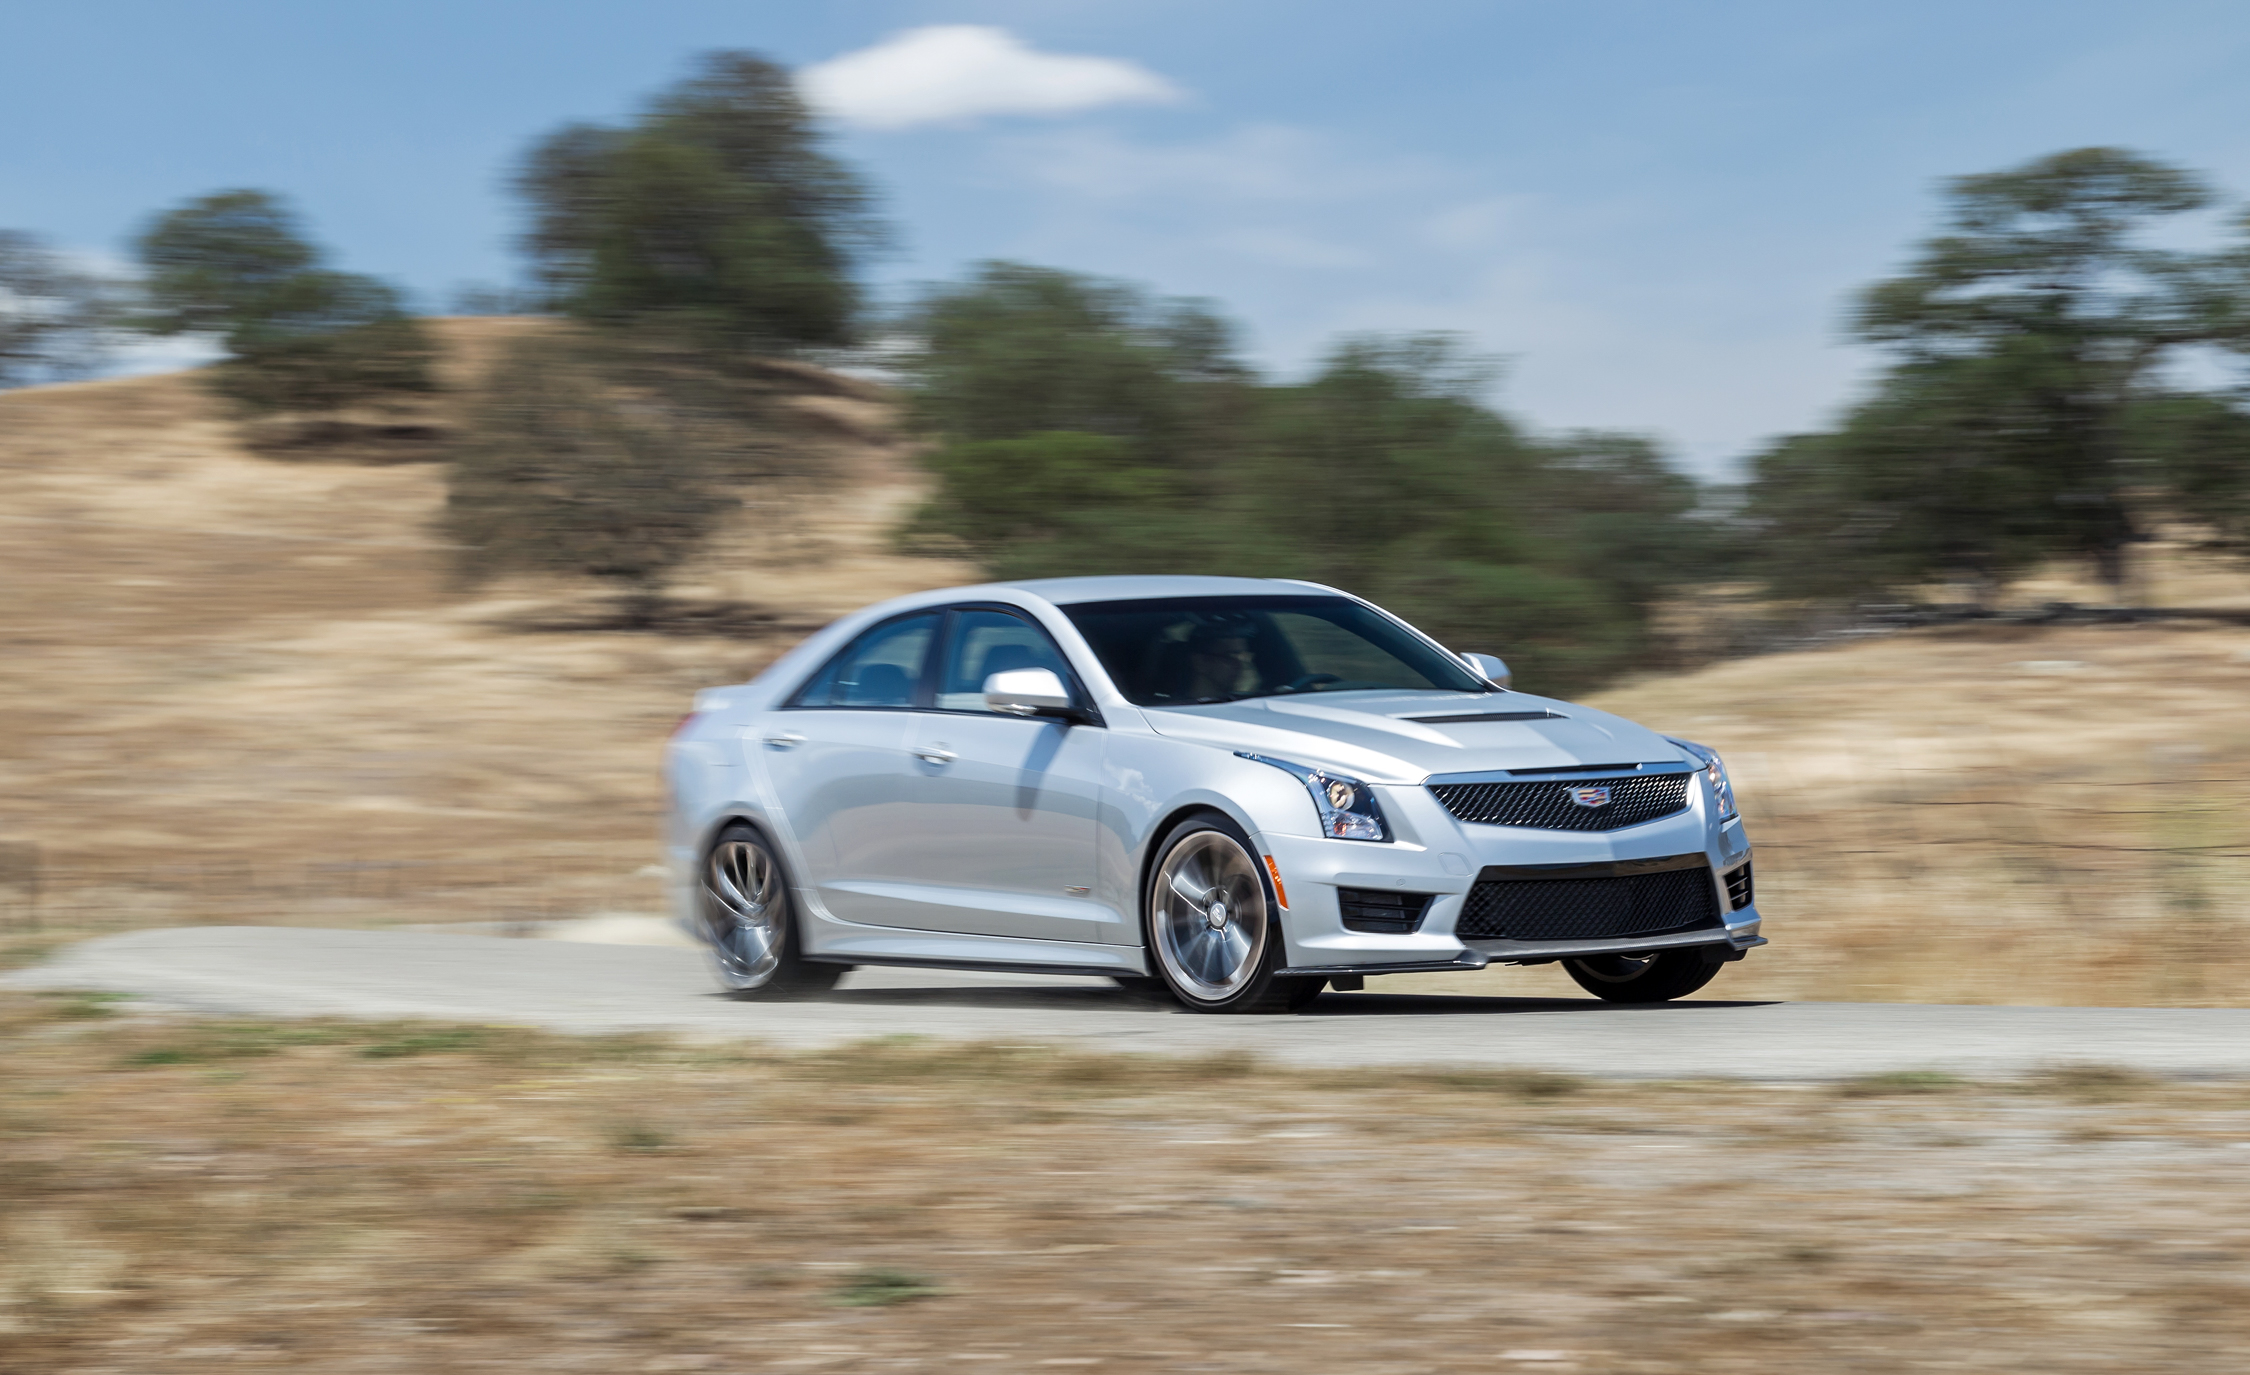 2016 Cadillac ATS-V Performance